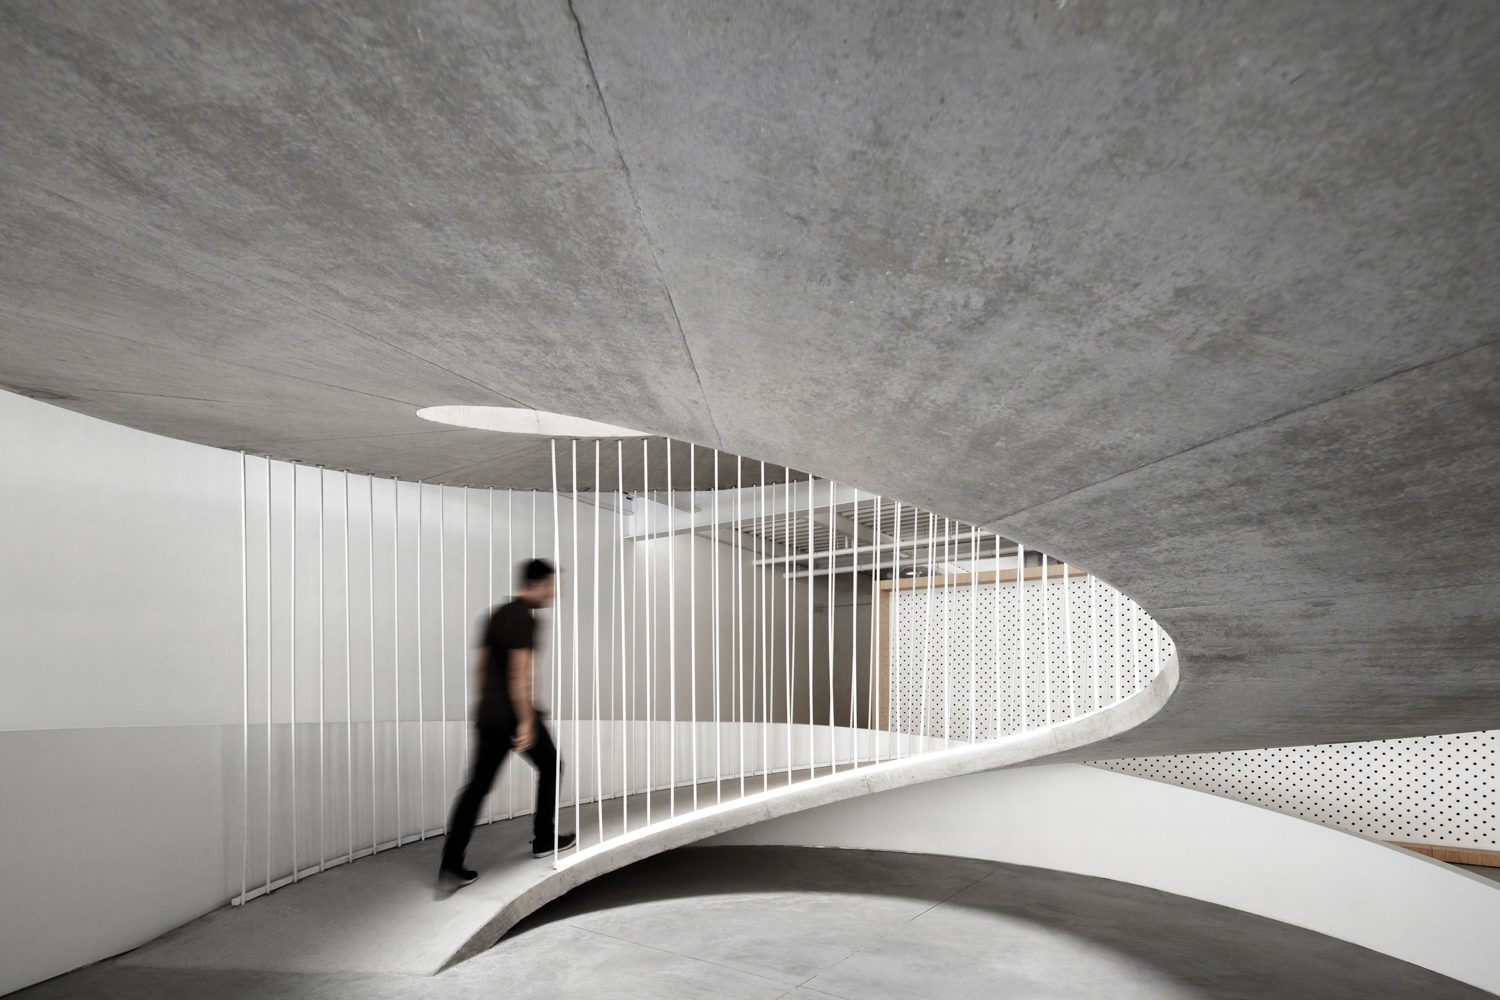 A 200-foot-long concrete ramp curls through the joint three-story offices of culinary communications agency Clavel's Kitchen and tech company E-goi in Matosinhos, Portugal, by Paulo Merlini Architects.